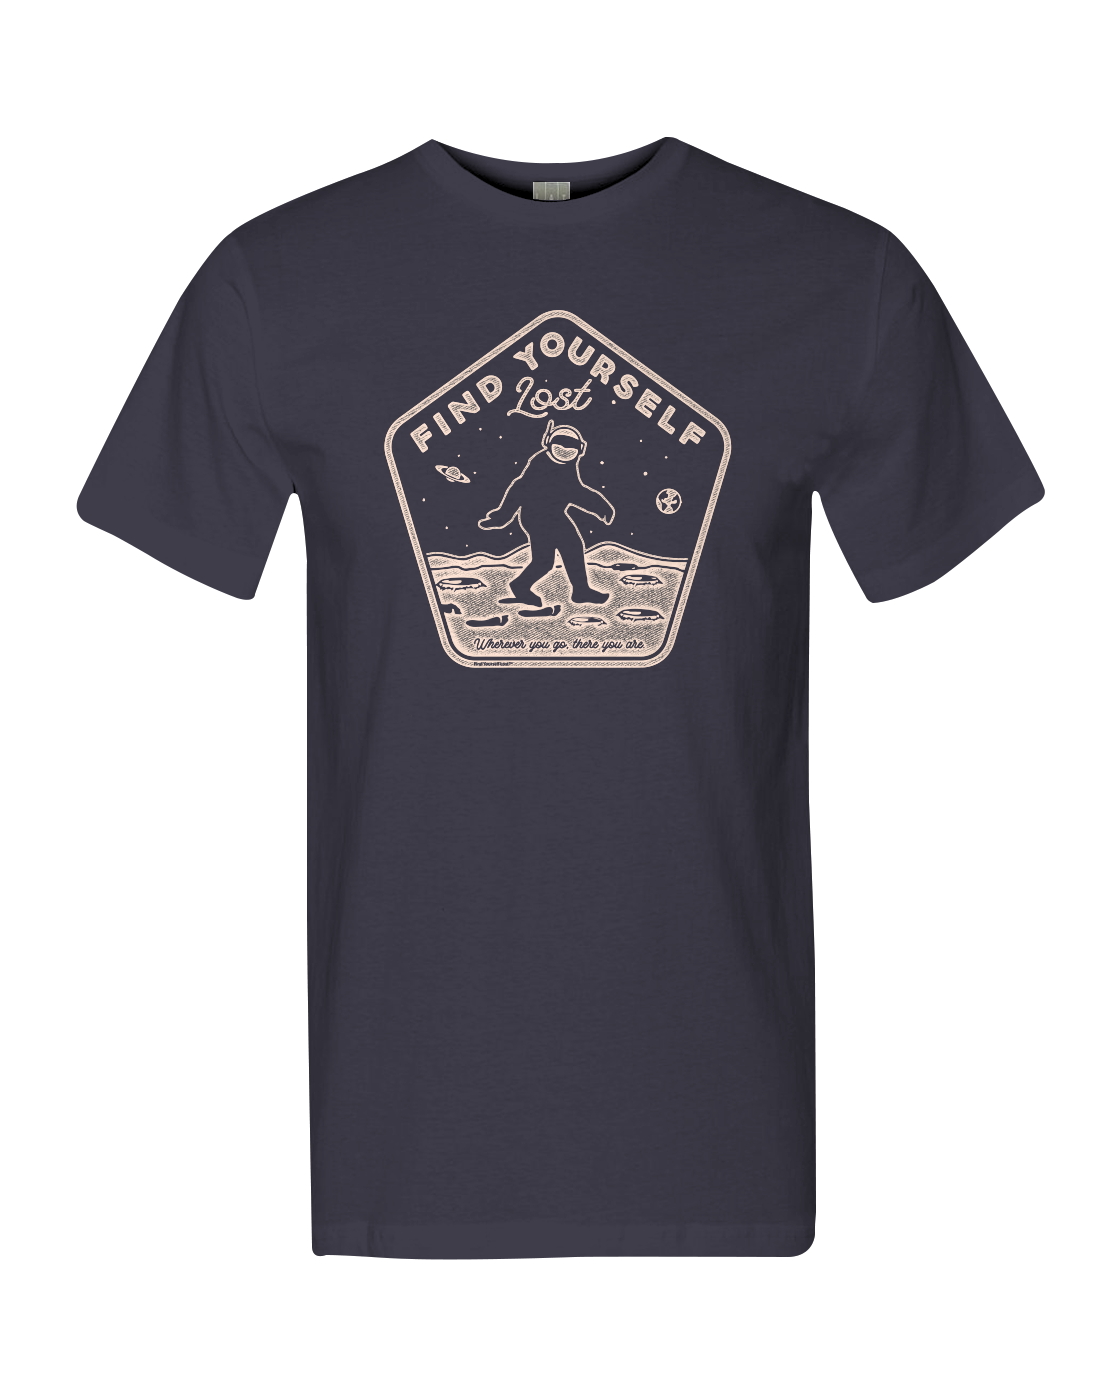 Find Yourself Lost ~ Bigfoot in Space tee